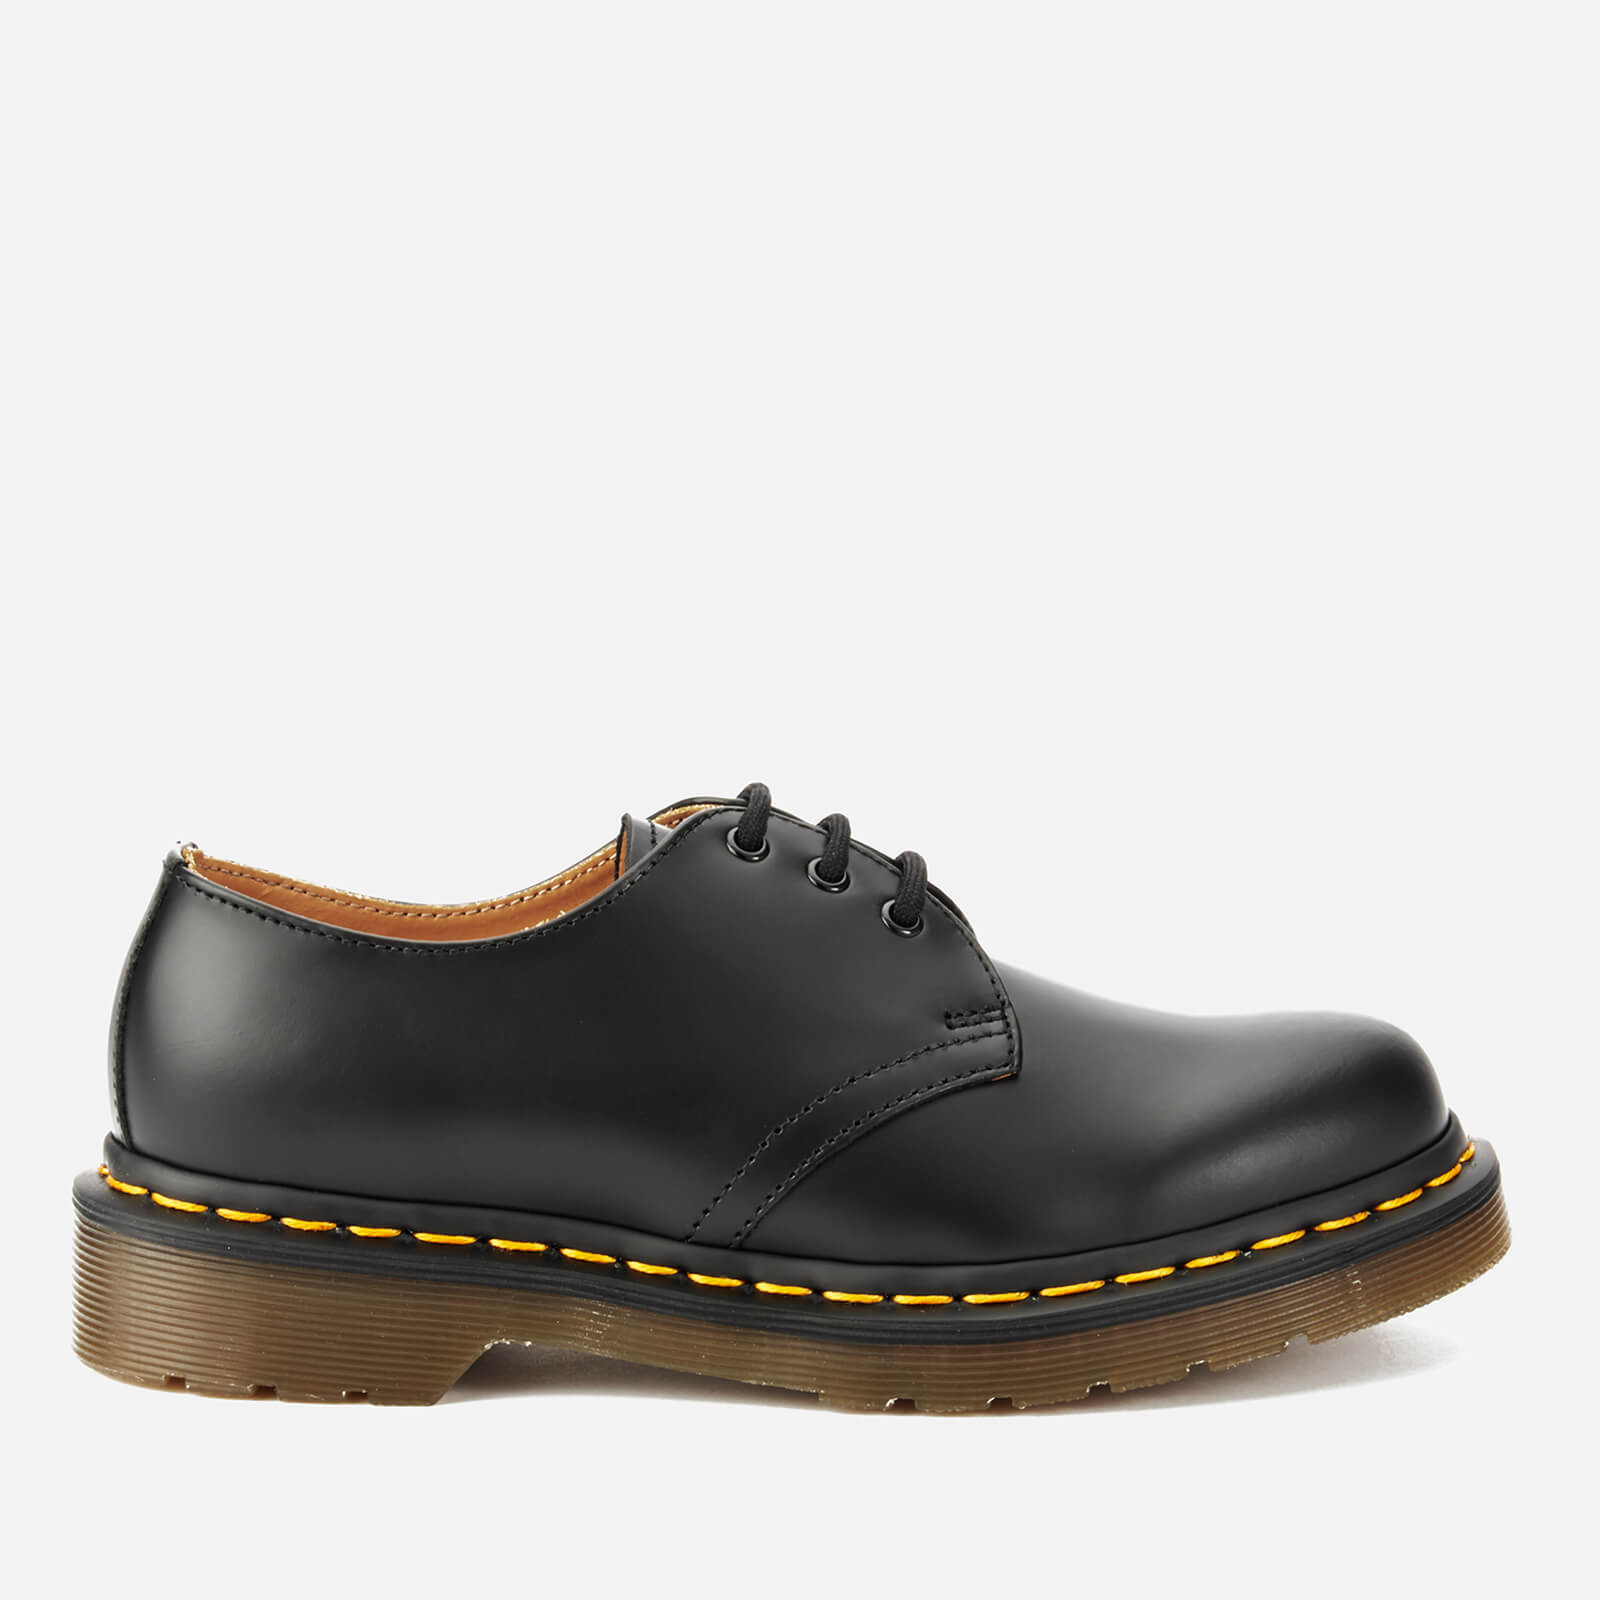 23c20ac3434b Dr. Martens 1461 Smooth Leather 3-Eye Shoes - Black